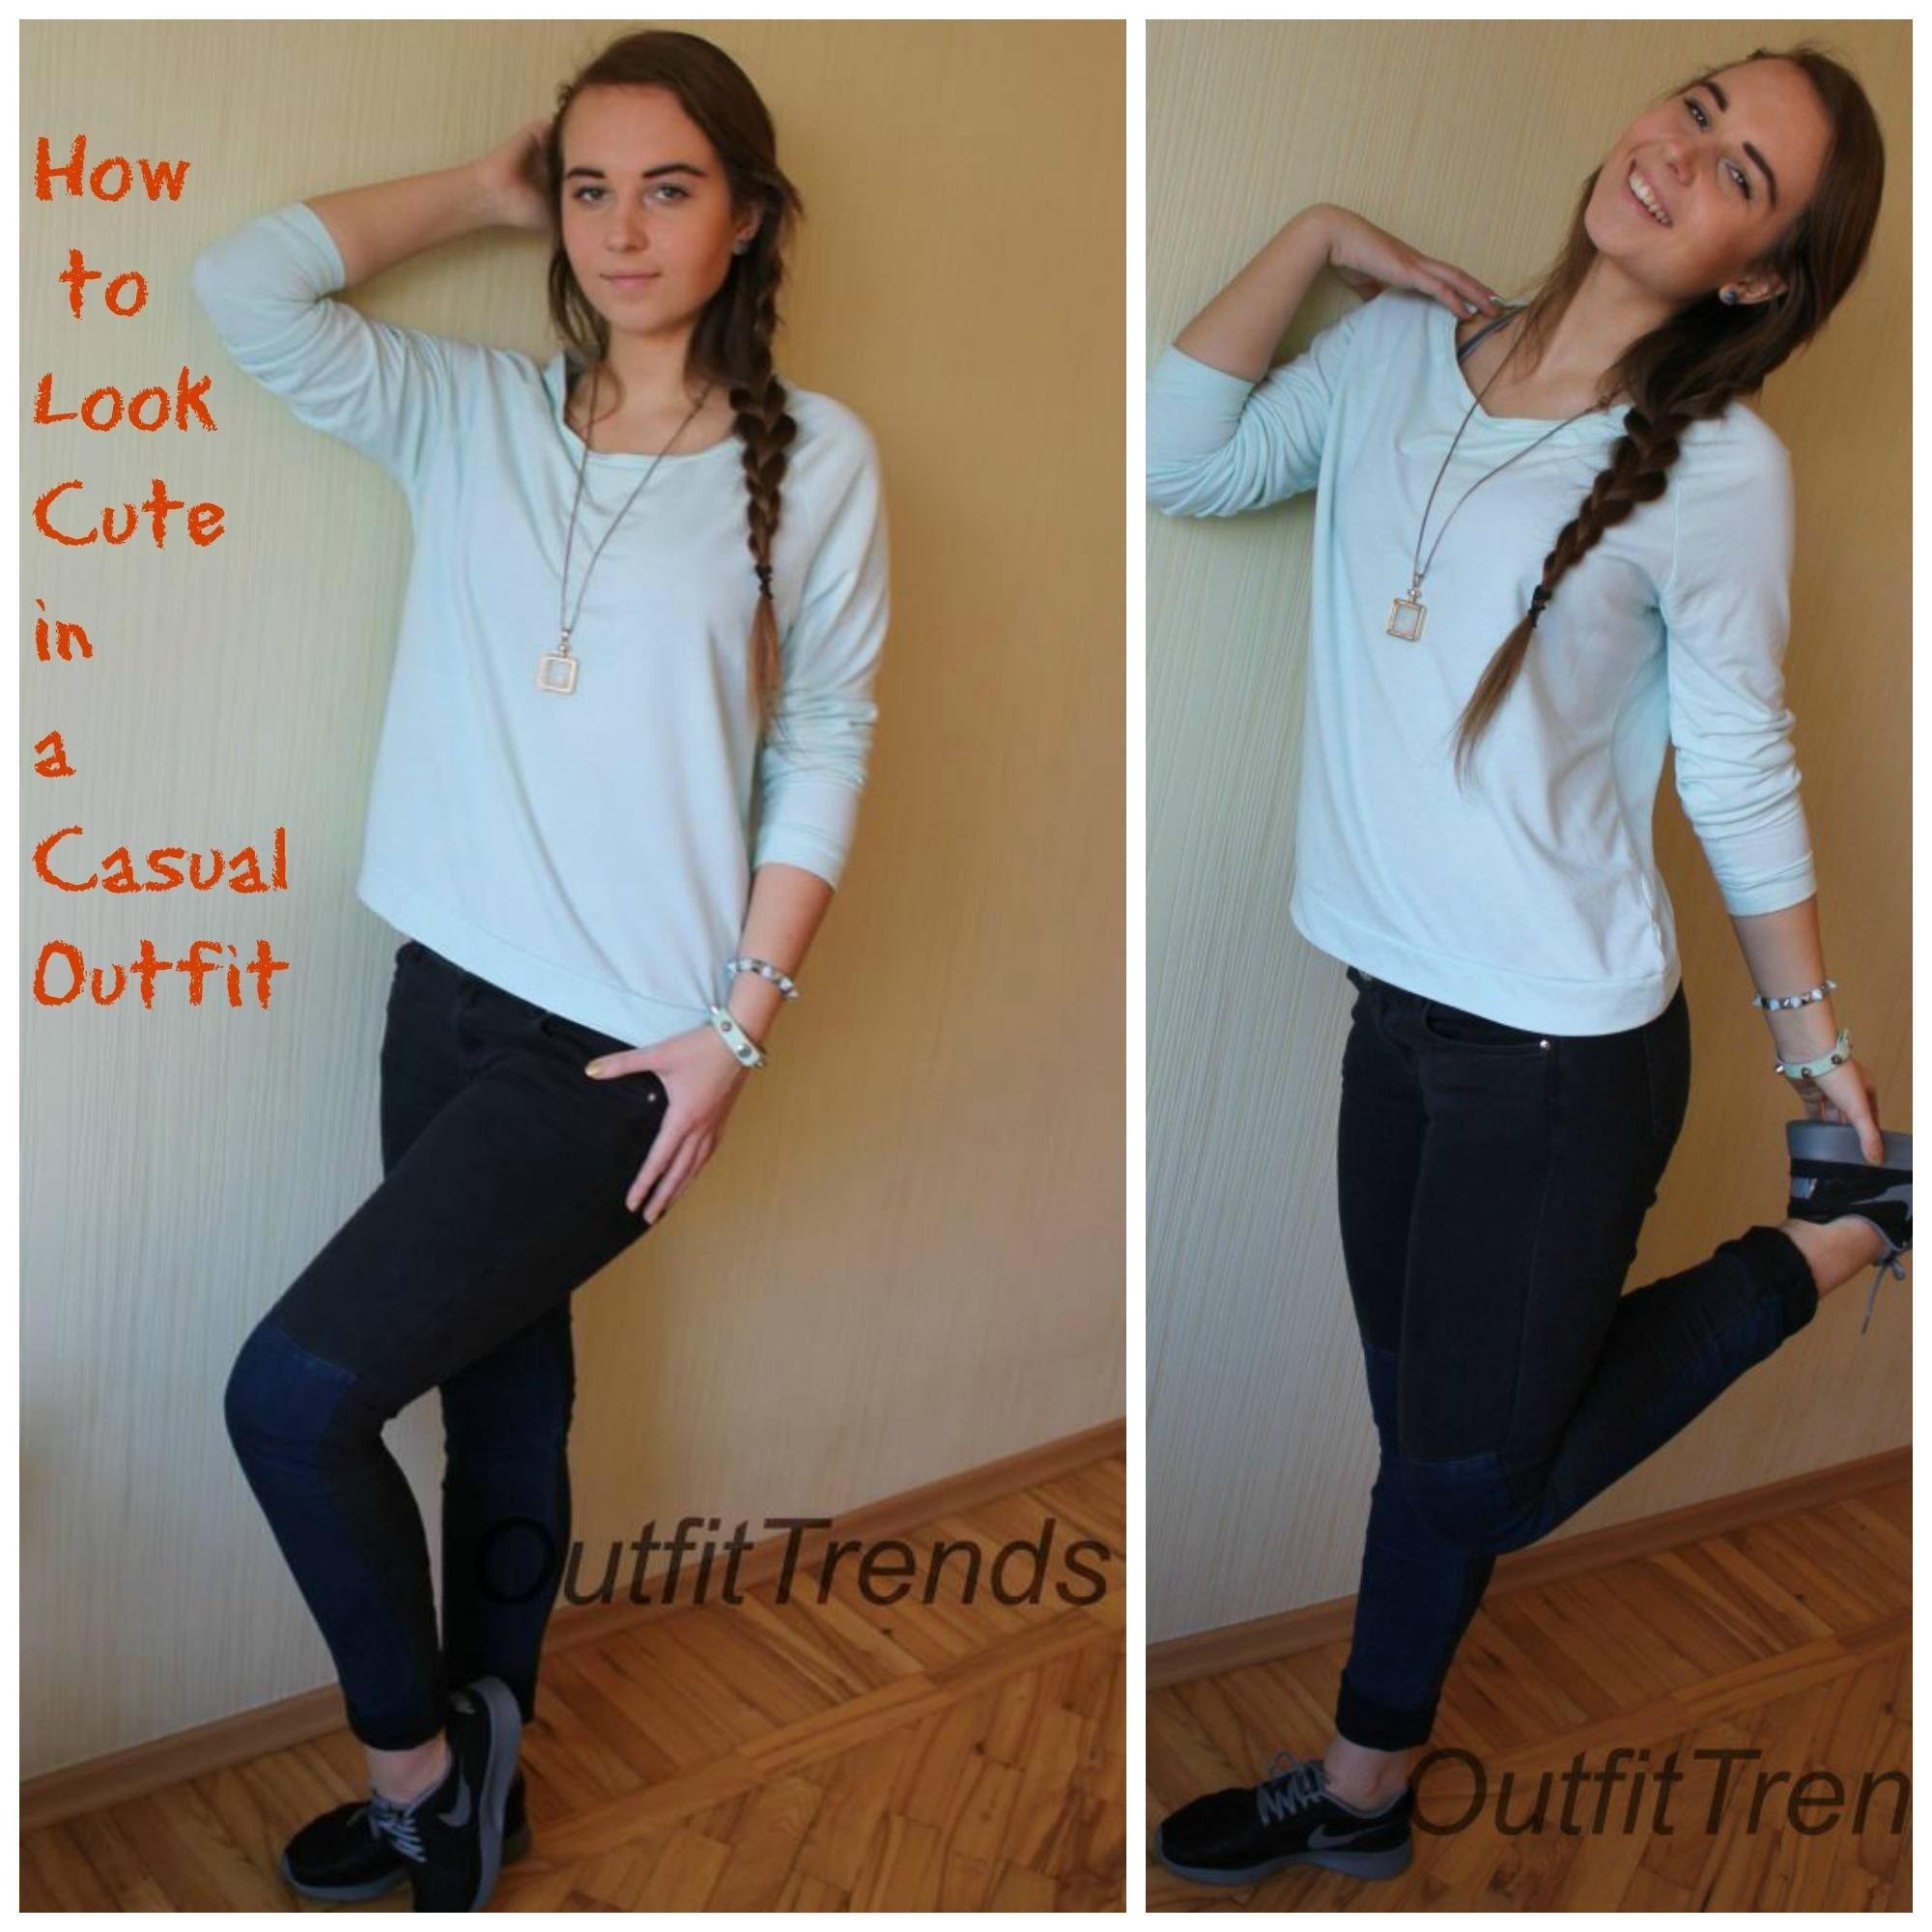 How to Look Cute in a Casual Outfit – Fashion Tips for Teens